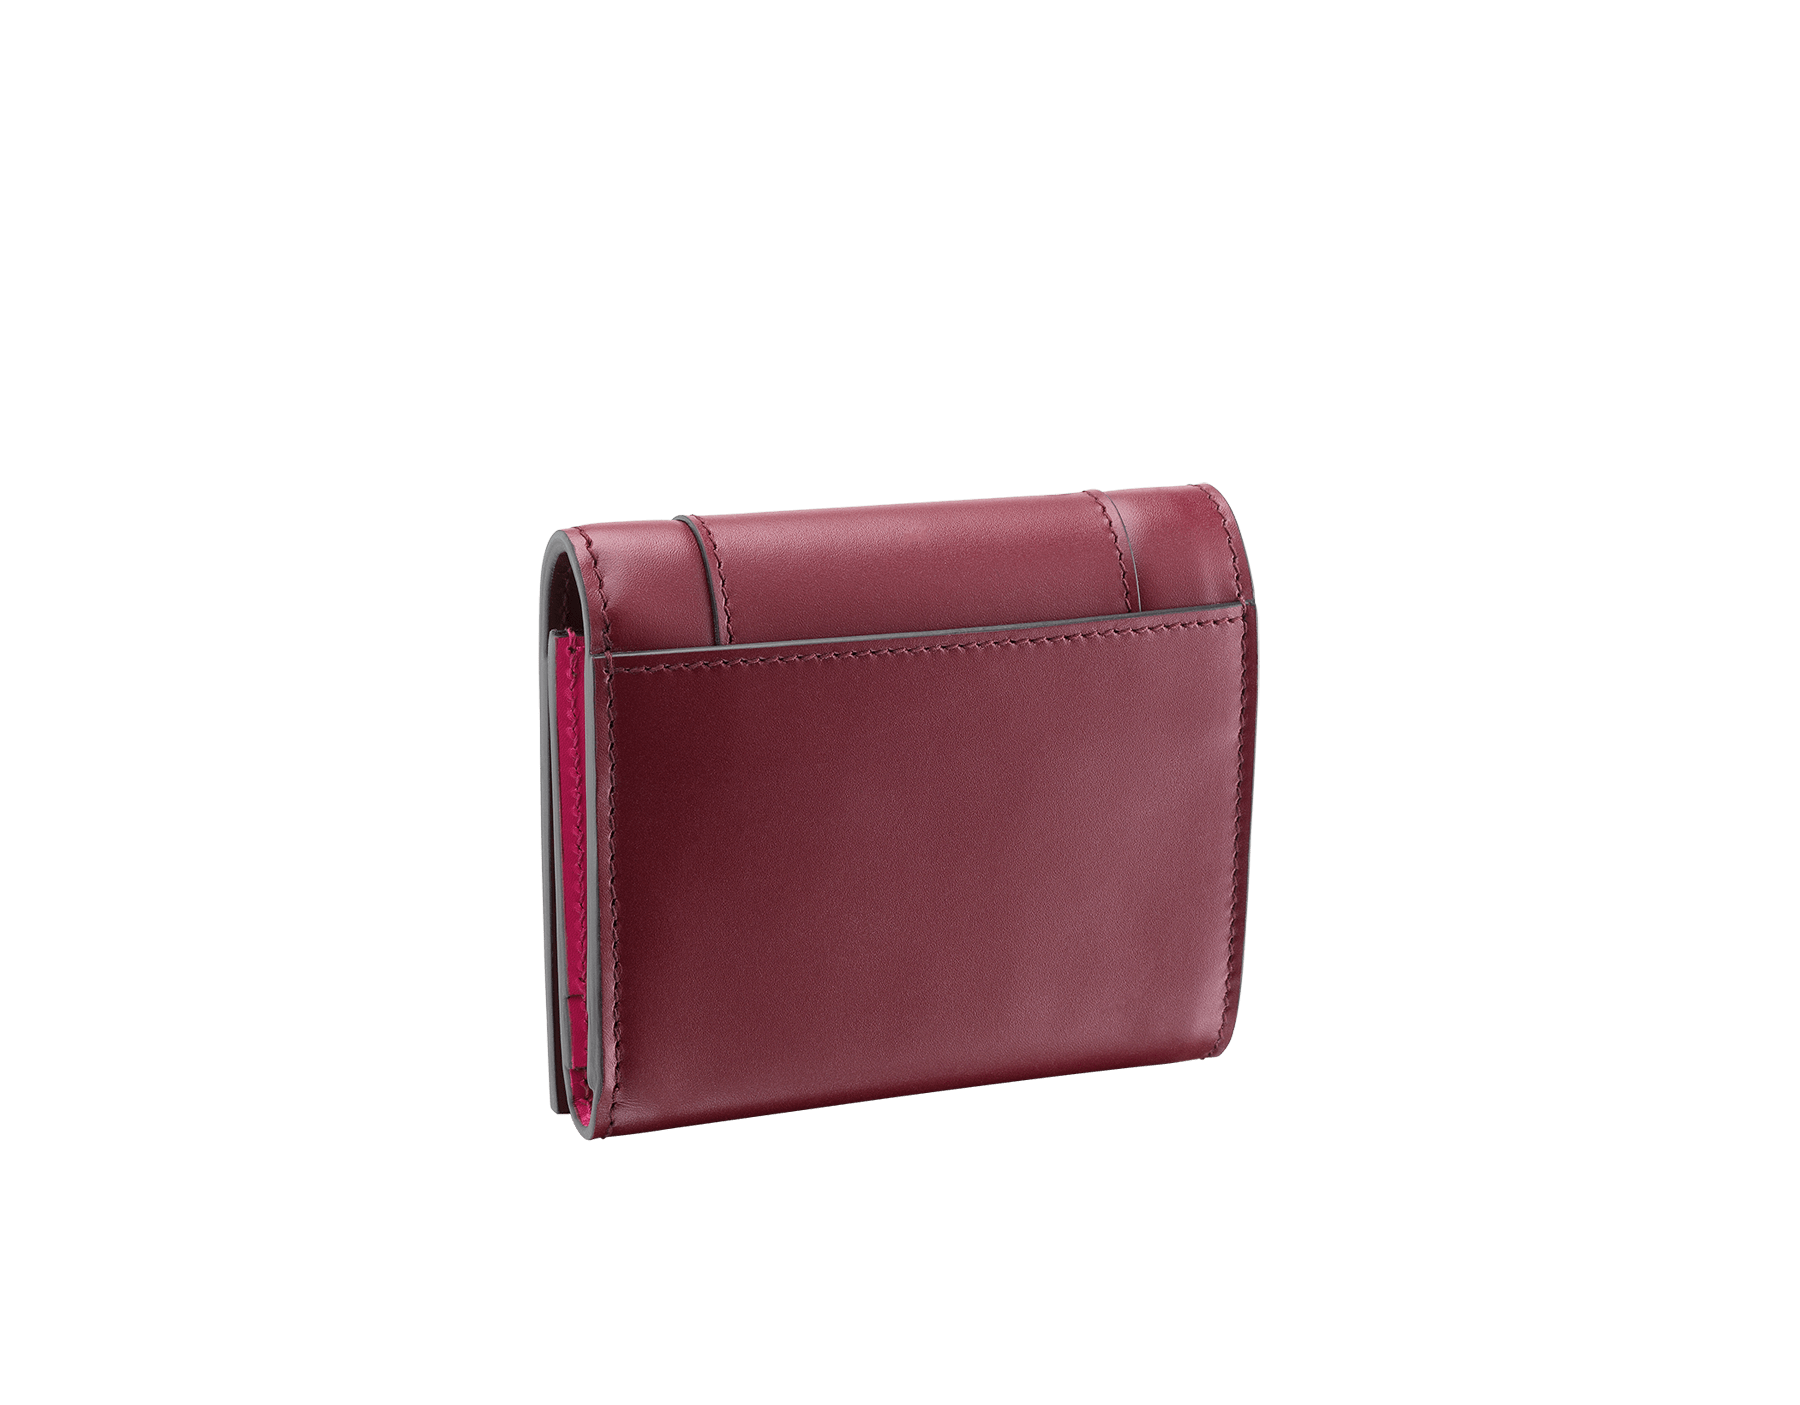 Serpenti Forever super compact wallet in roman garnet and pink spinel calf leather. Iconic snakehead zip puller in black and white enamel, with green malachite enamel eyes. 288036 image 3